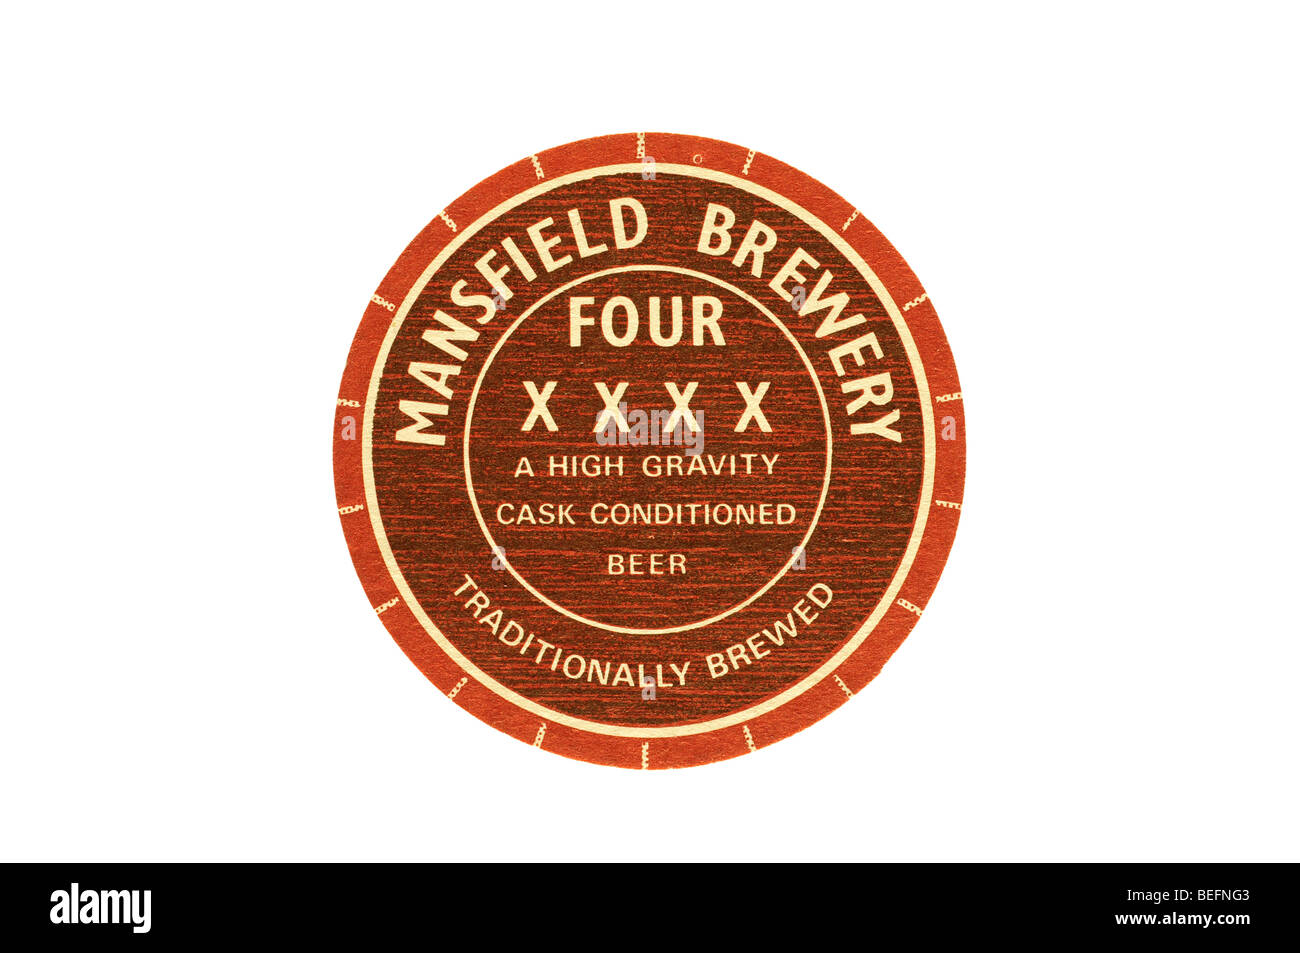 mansfield brewery four xxxx a high gravity cask conditioned beer traditionaly brewed - Stock Image